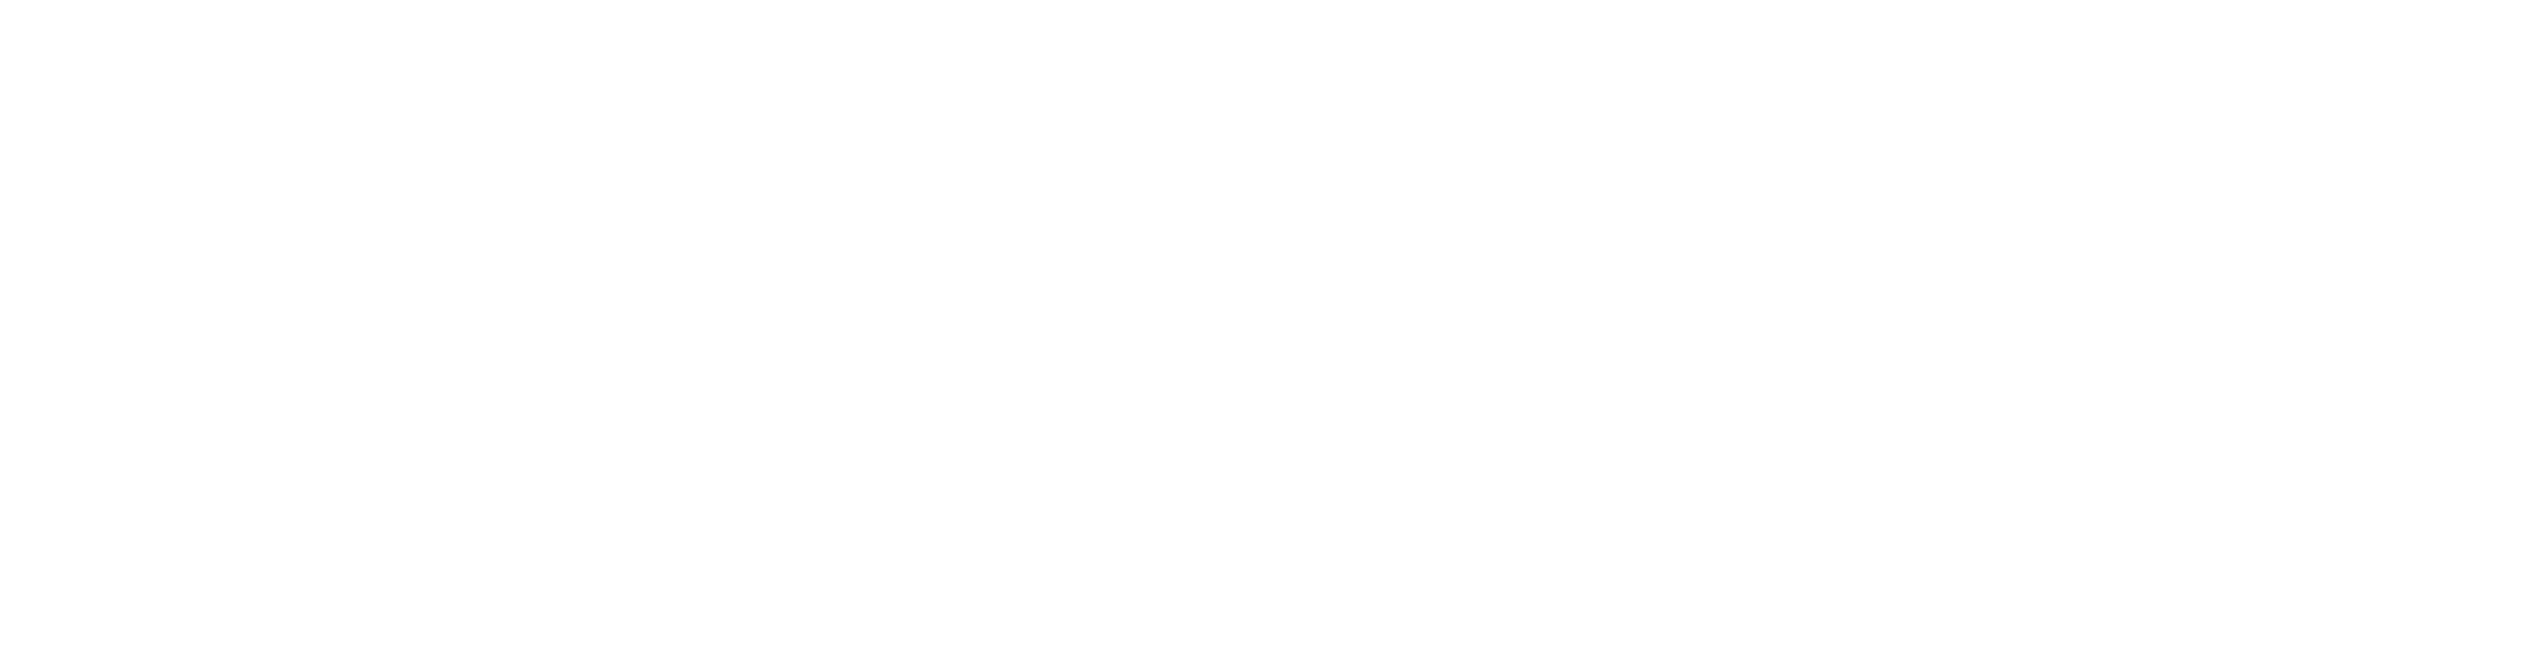 Snooze Mattress Co. Logo